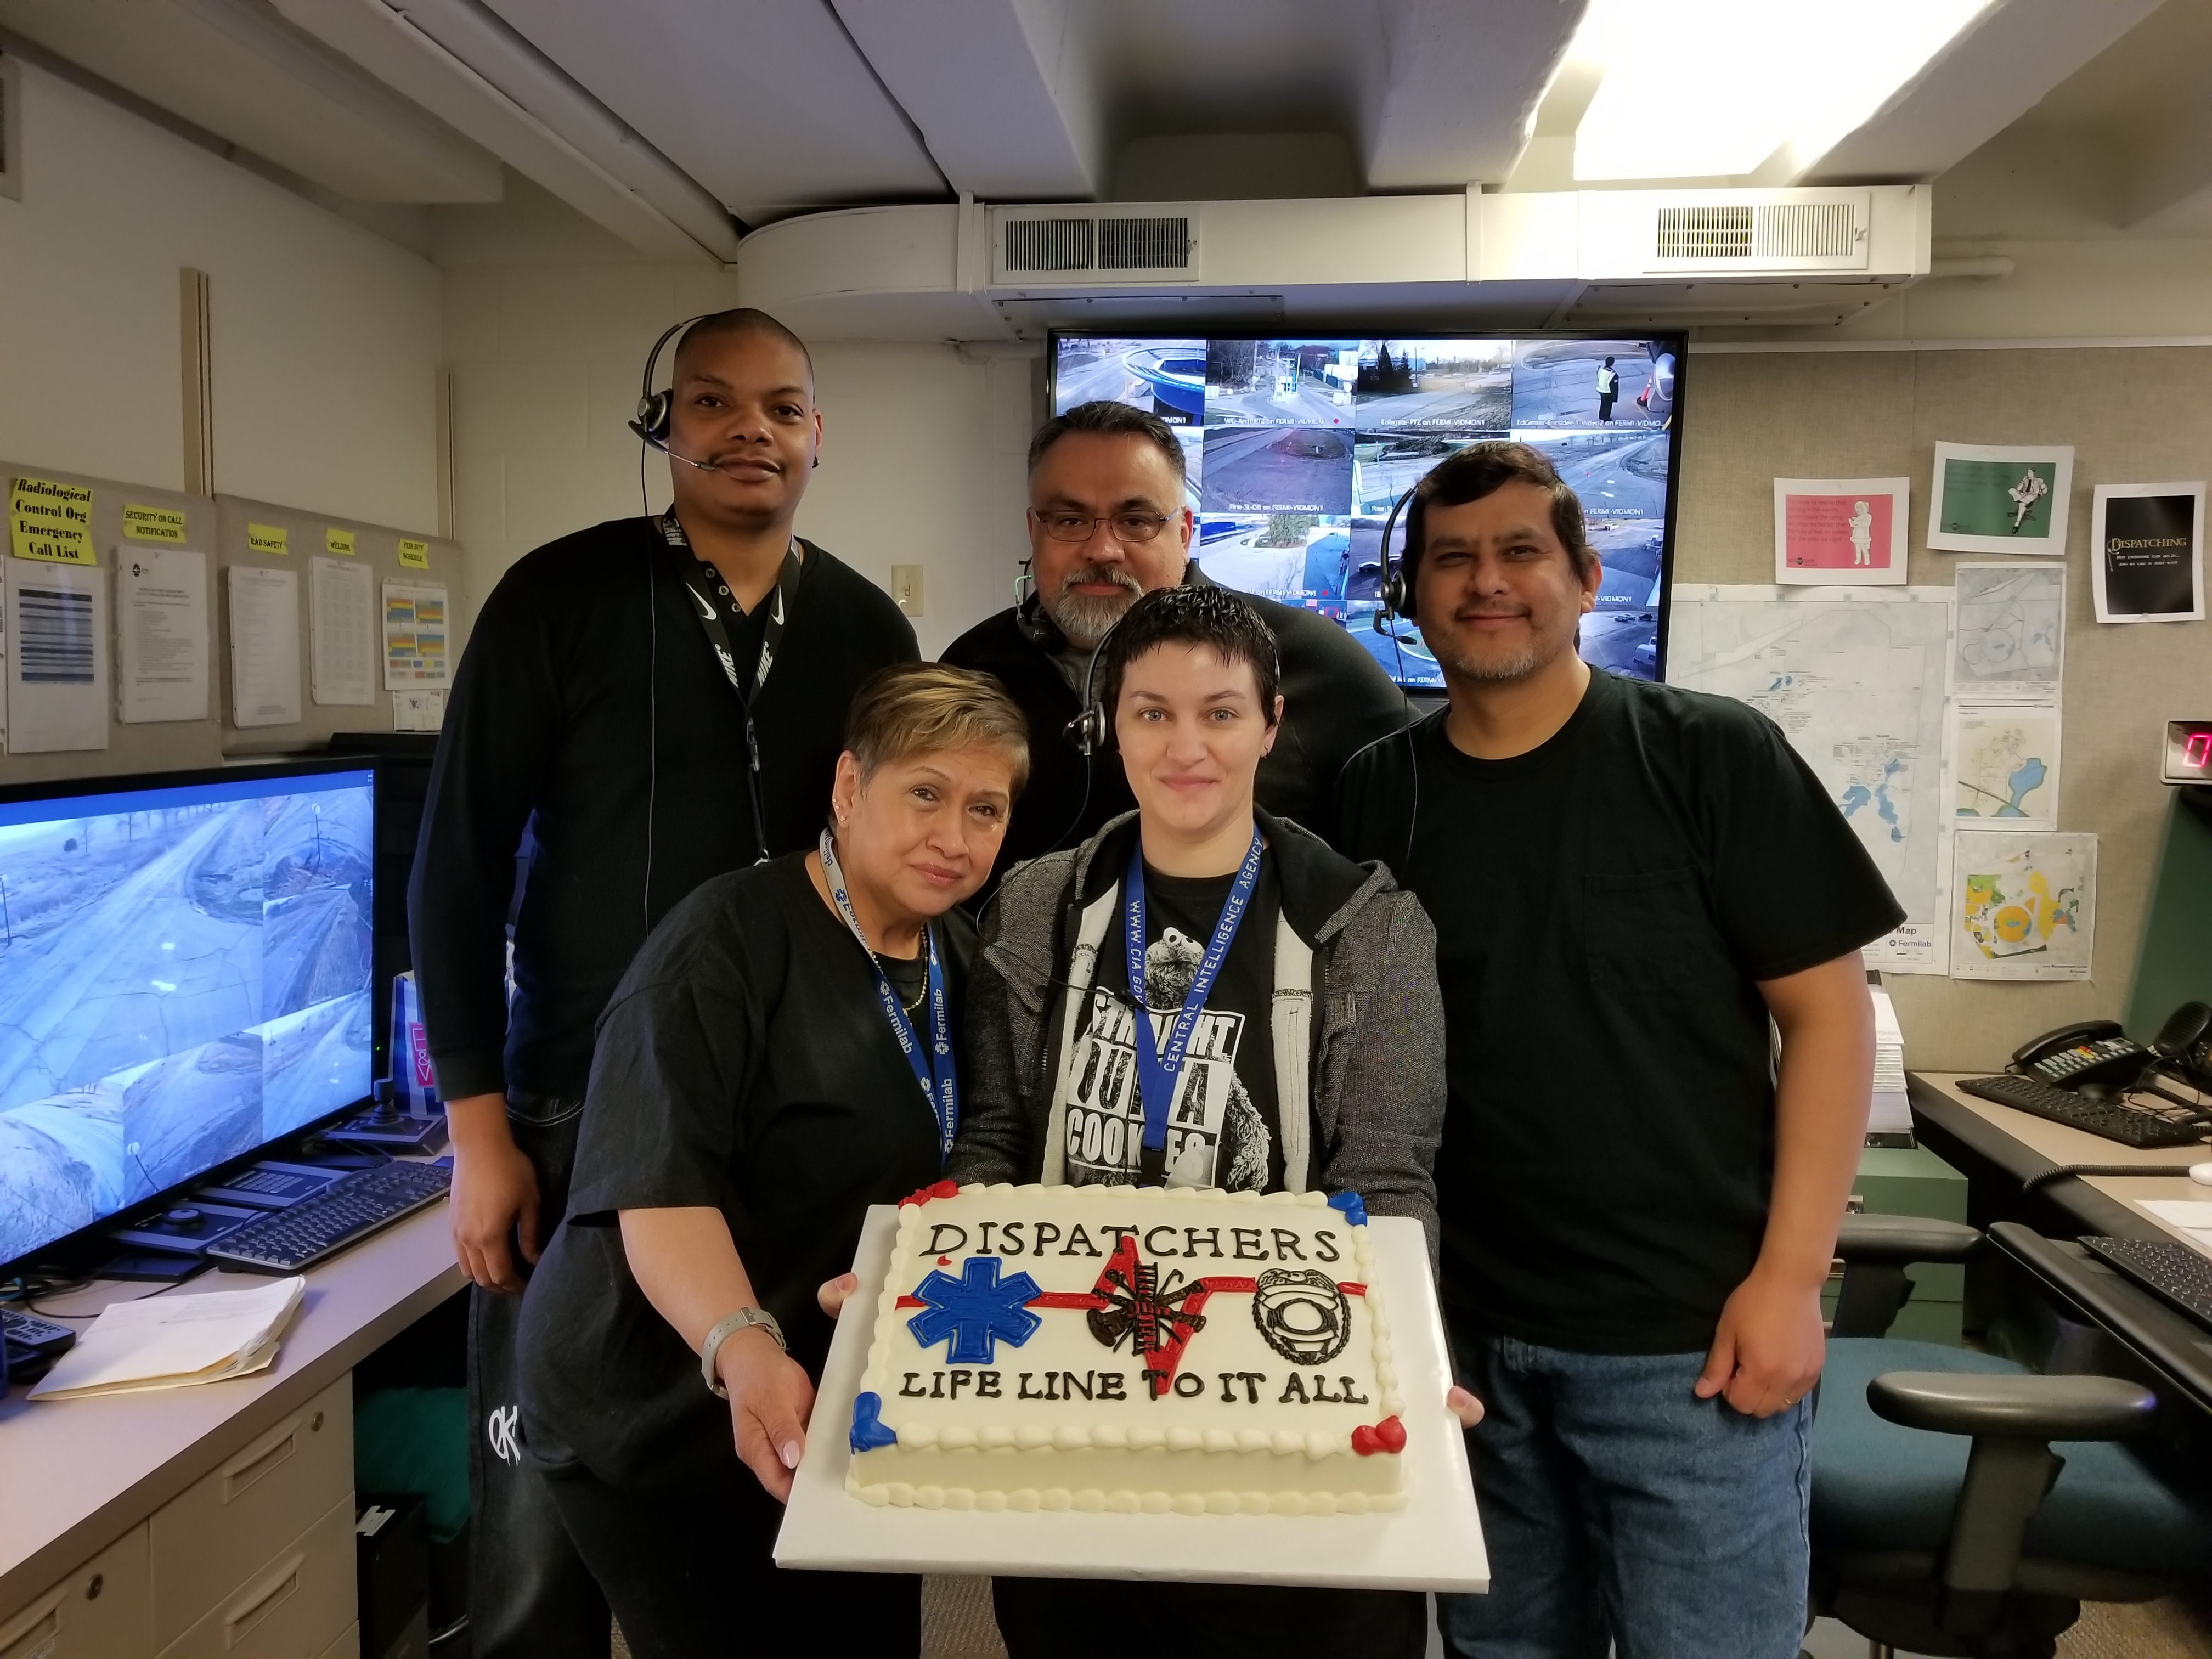 Lab employees celebrate of National Public Safety Telecommunicators Week. Dispatchers are the lifeline in public safety — always on duty 24 hours a day, seven days a week.  From left: Charles Shaw, Mike Liscano, Jose Nevares, Yolanda Martinez, Donna Iraci. Photo: Lori Limberg, people